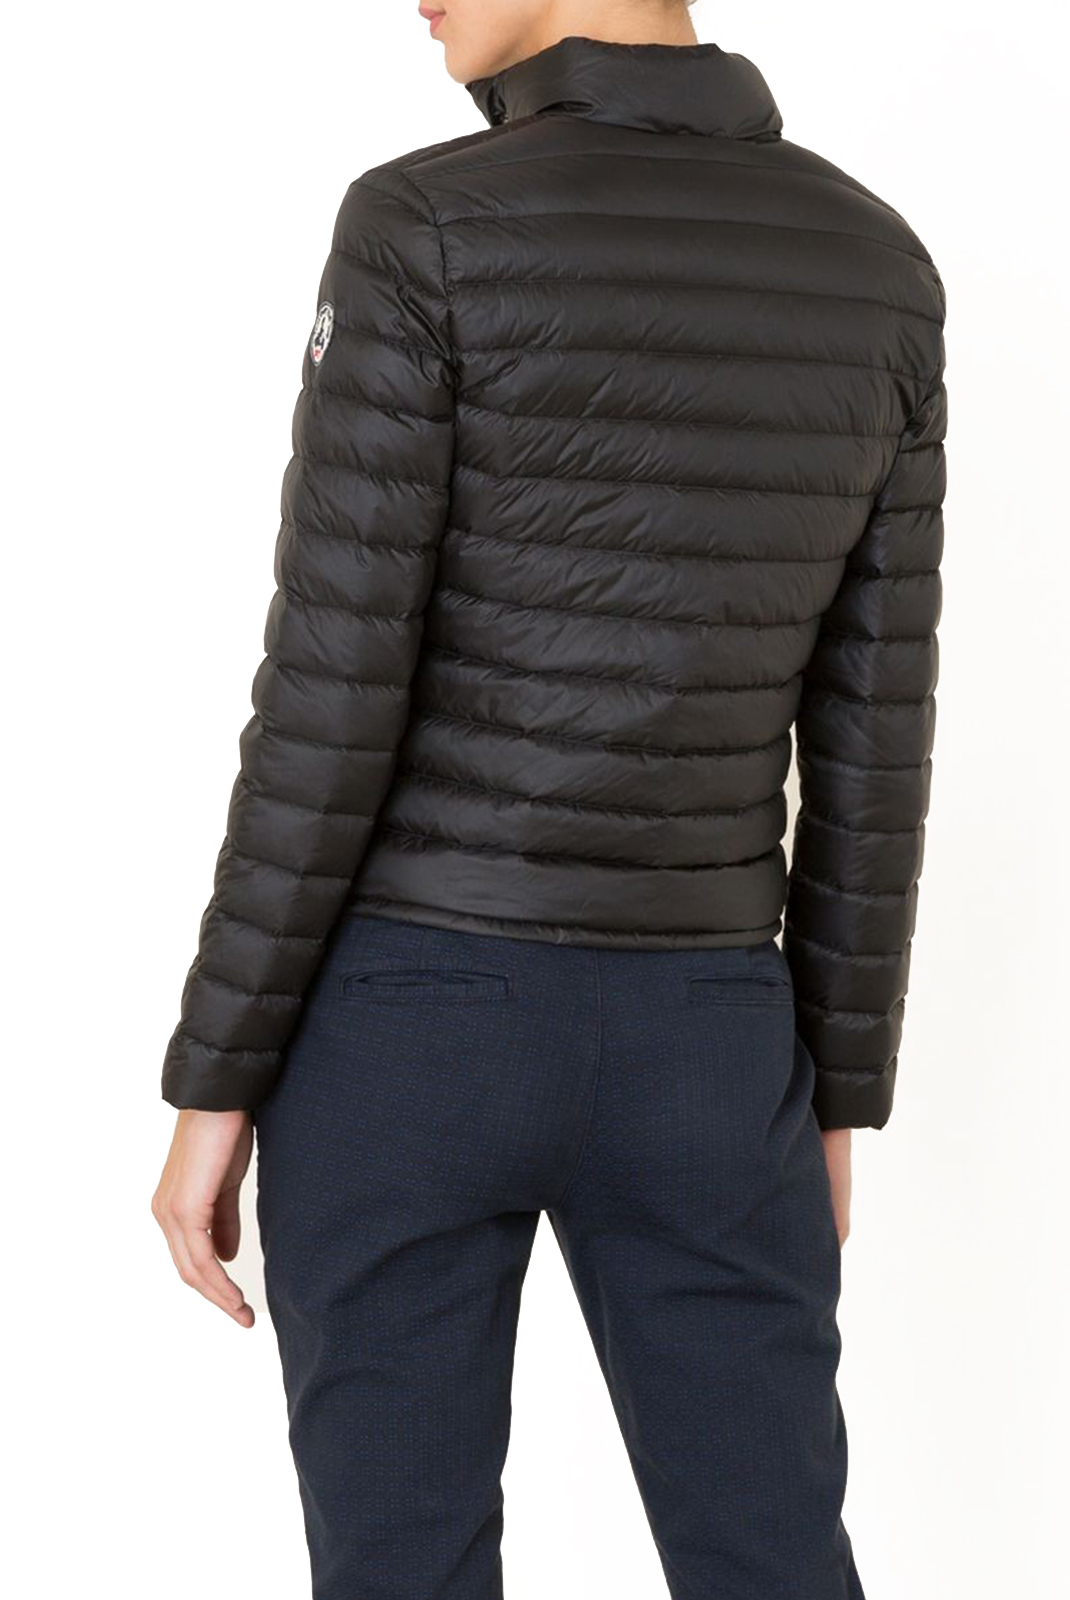 Blouson  Just over the top SONIA 999  BLACK